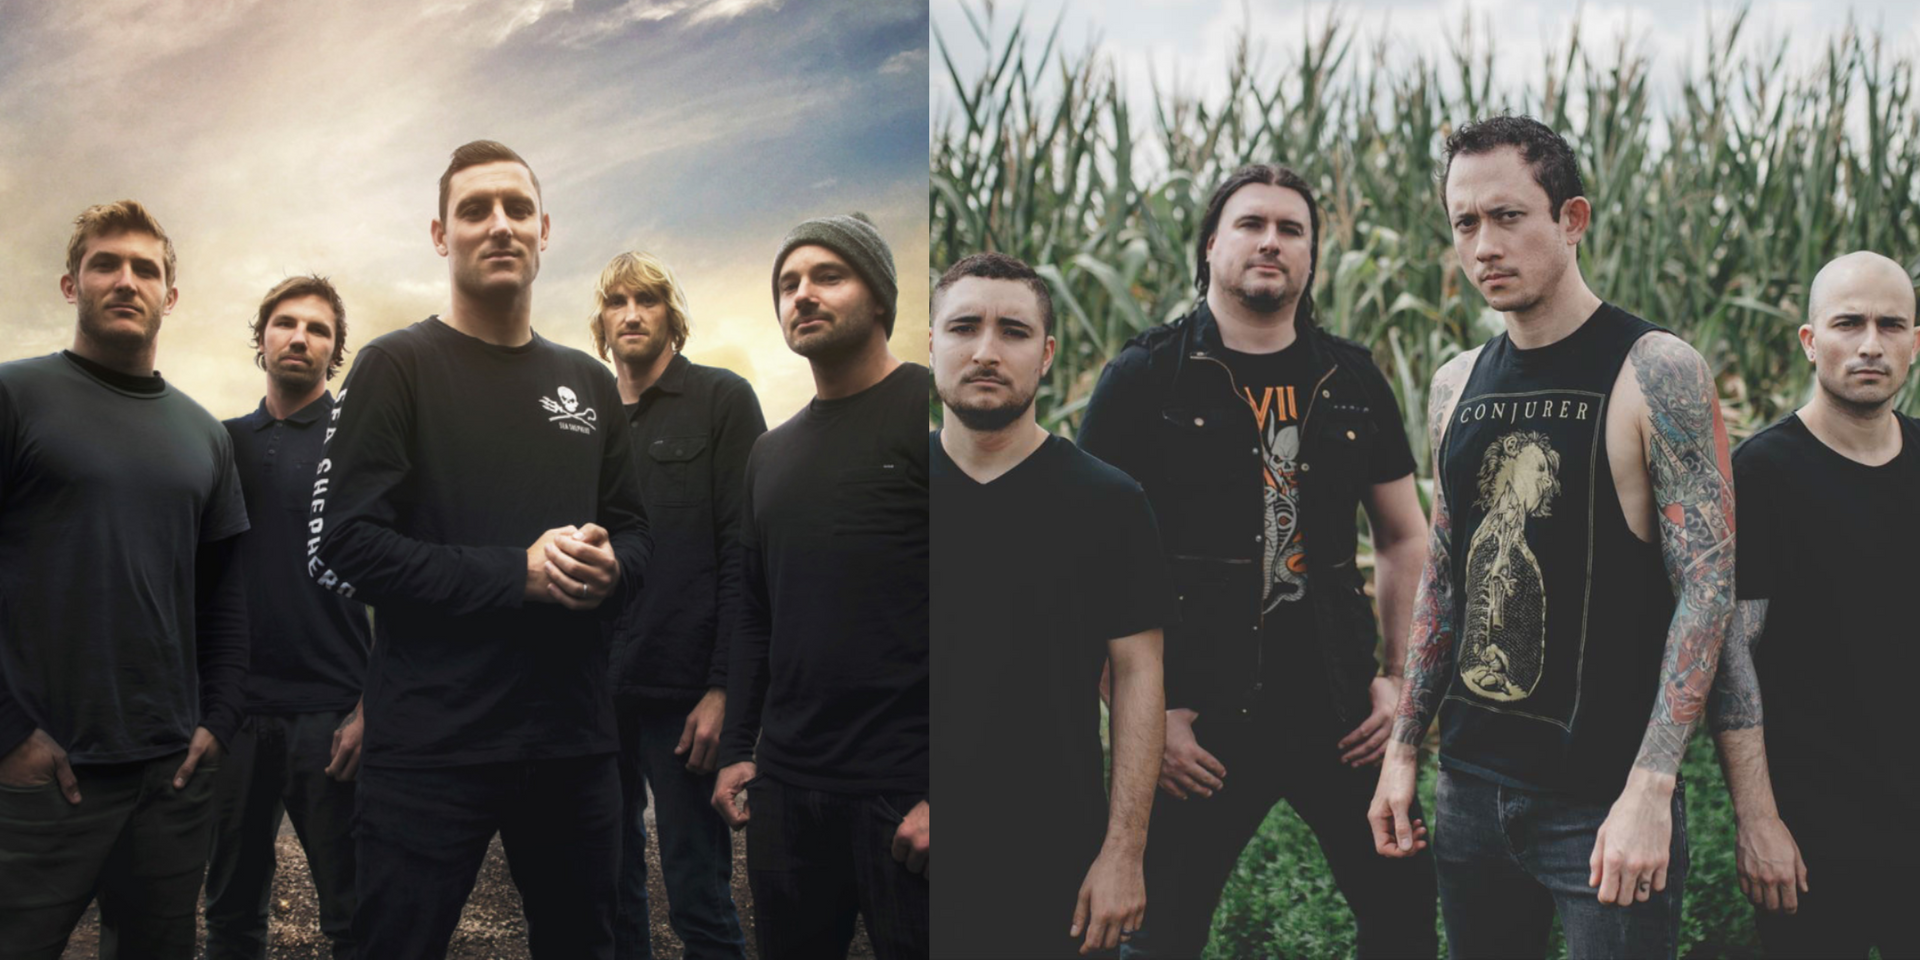 Good Things Festival Australia announces line-up – Parkway Drive, Trivium, A Day To Remember and more